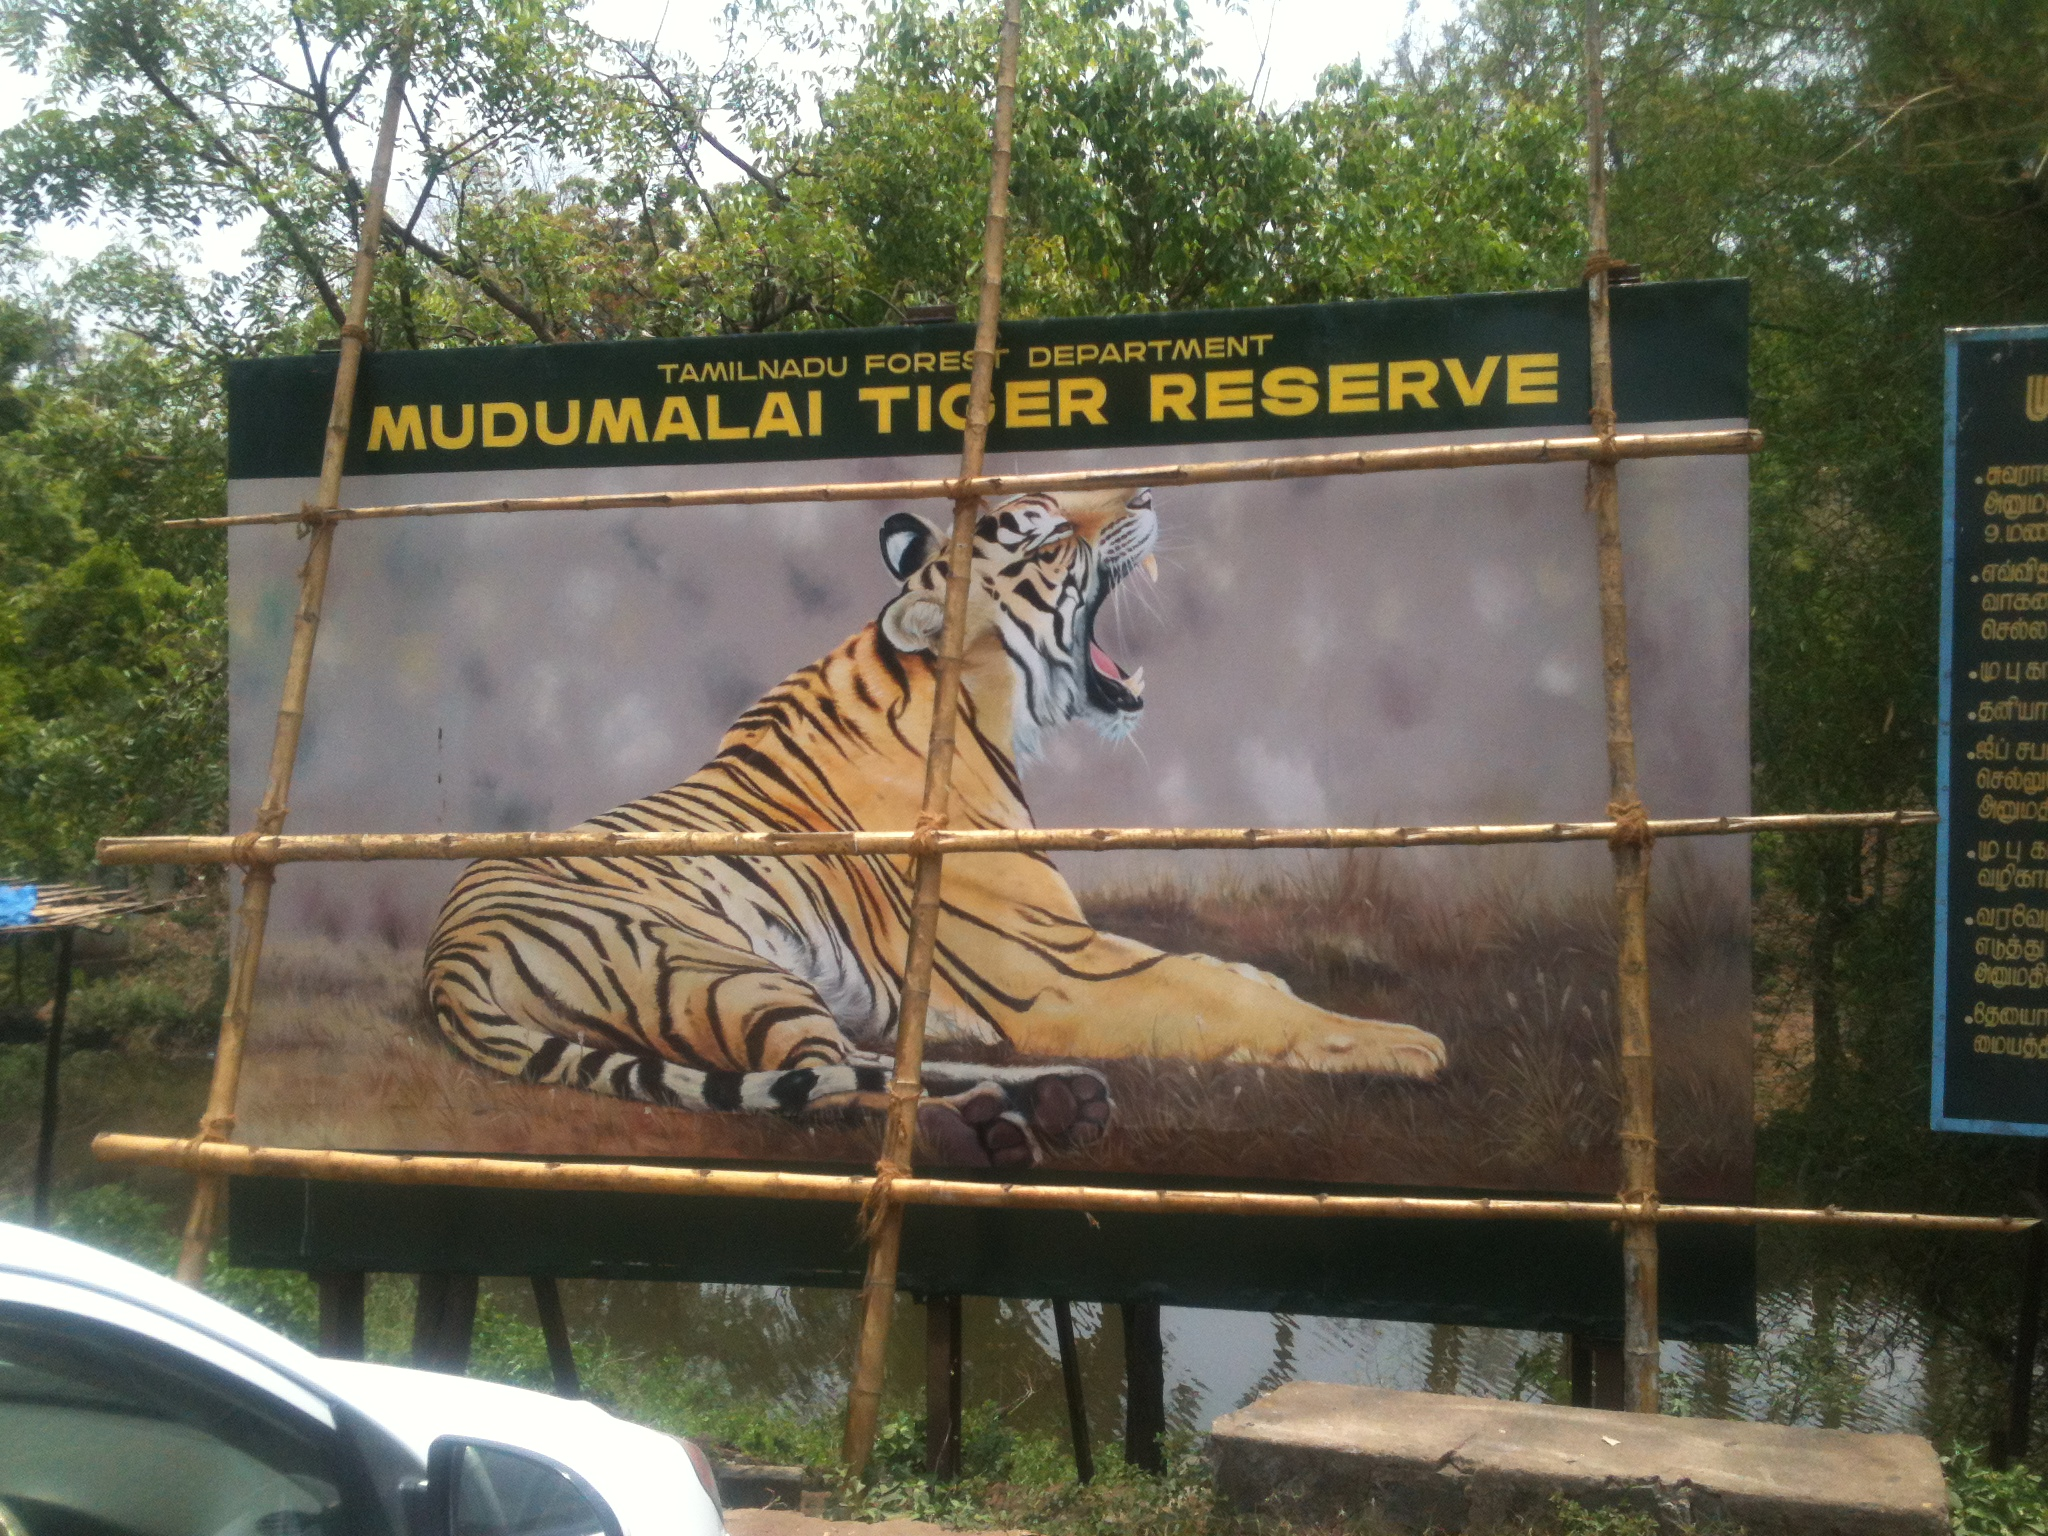 Mudumalai tiger reserve entrance